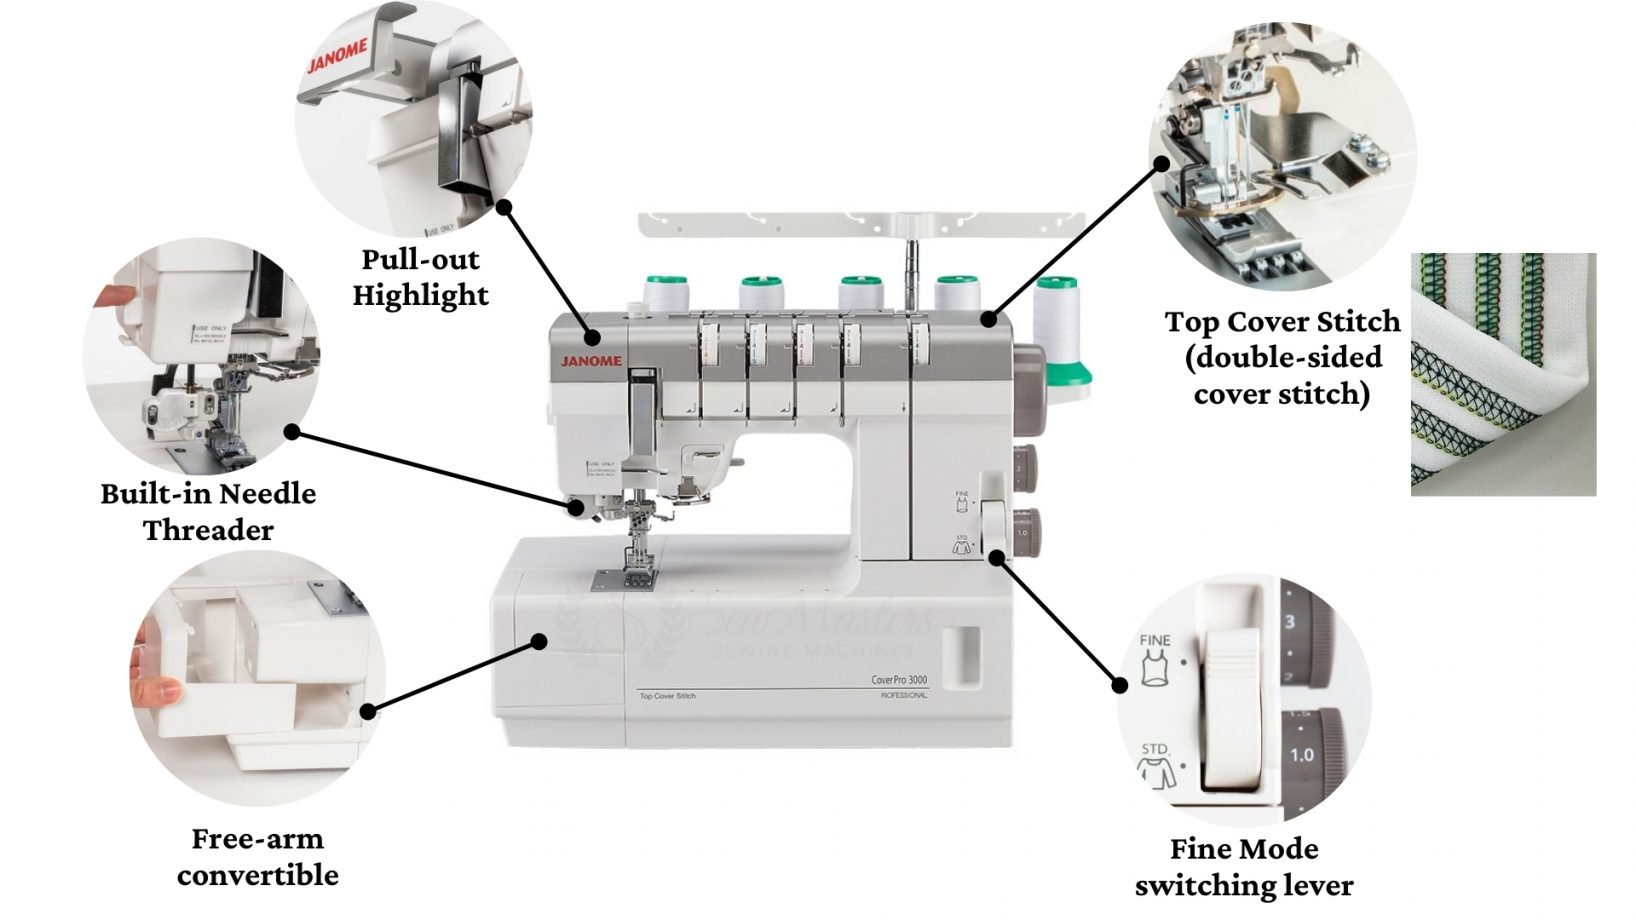 cp 3000 coverstitch overview